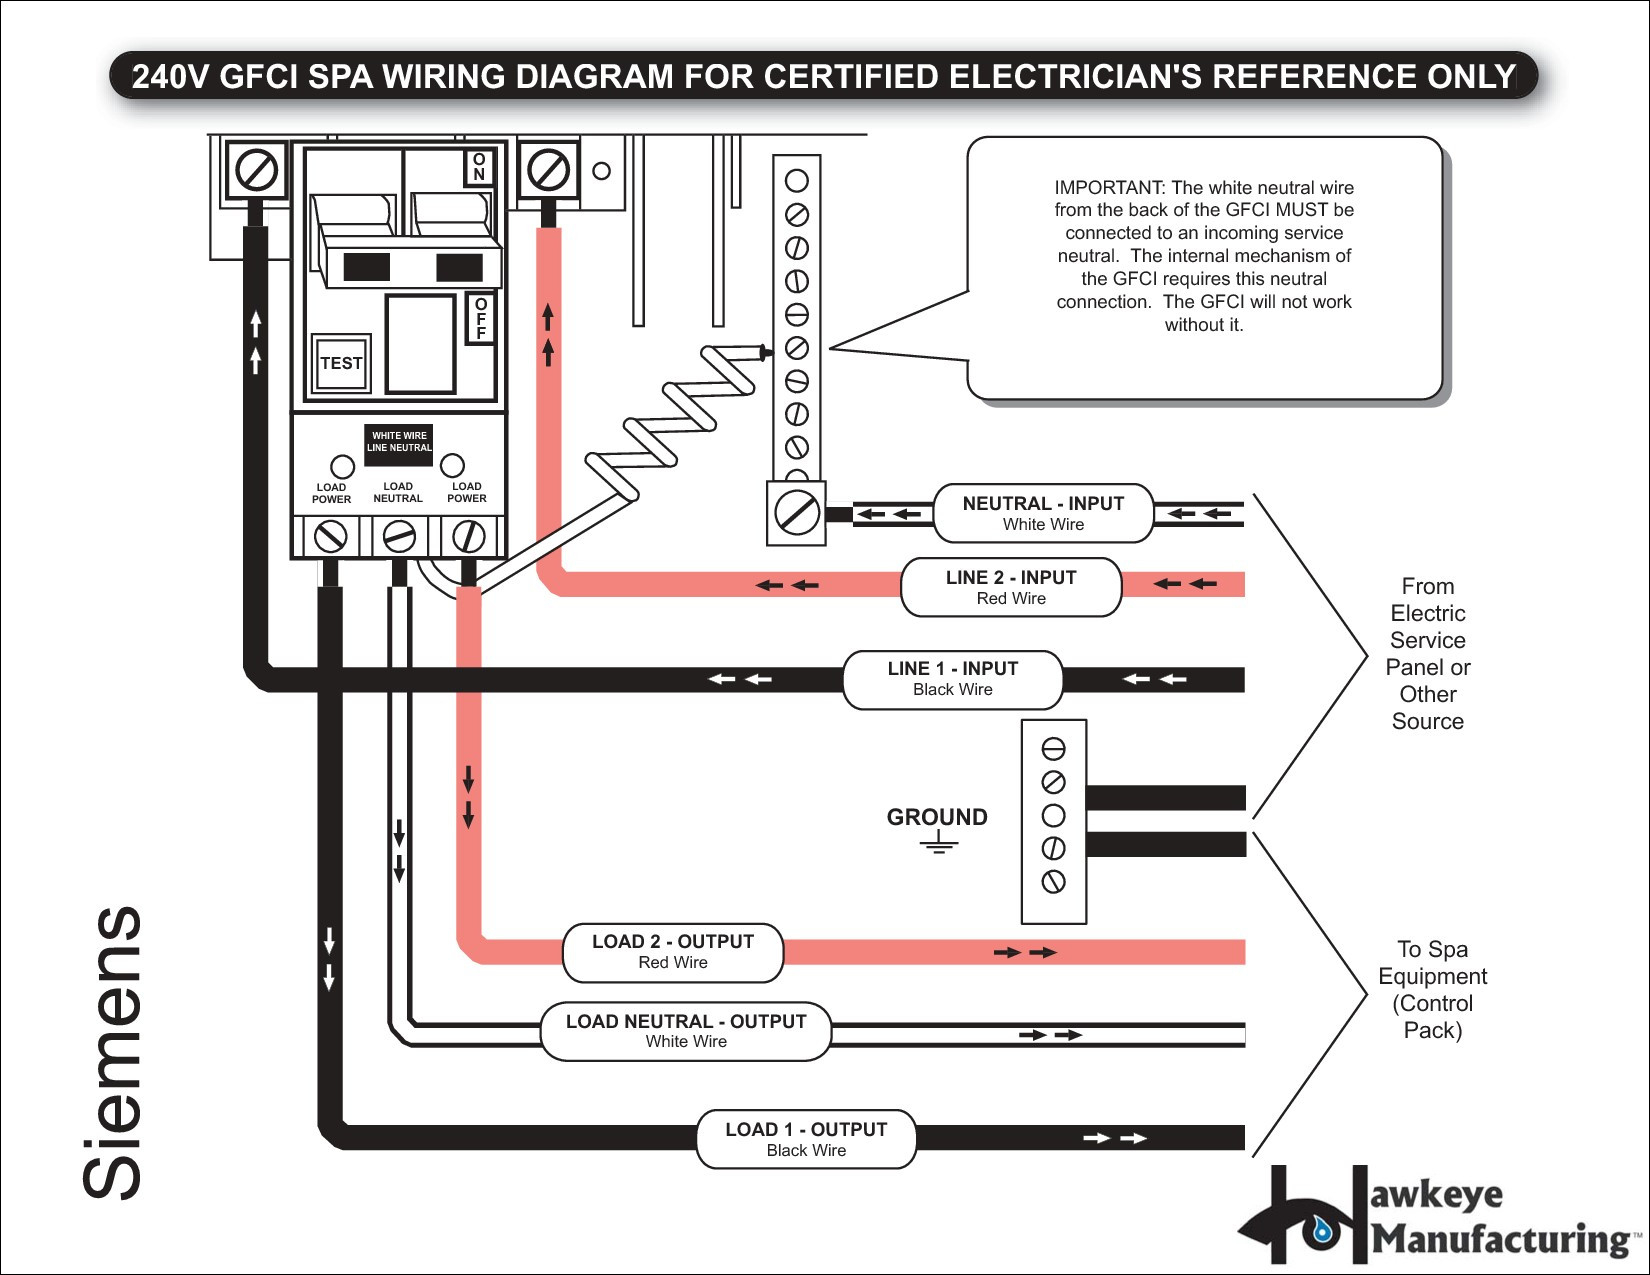 Diagram 220v Breaker Wiring Diagram Full Version Hd Quality Wiring Diagram Tubewiring Efran It